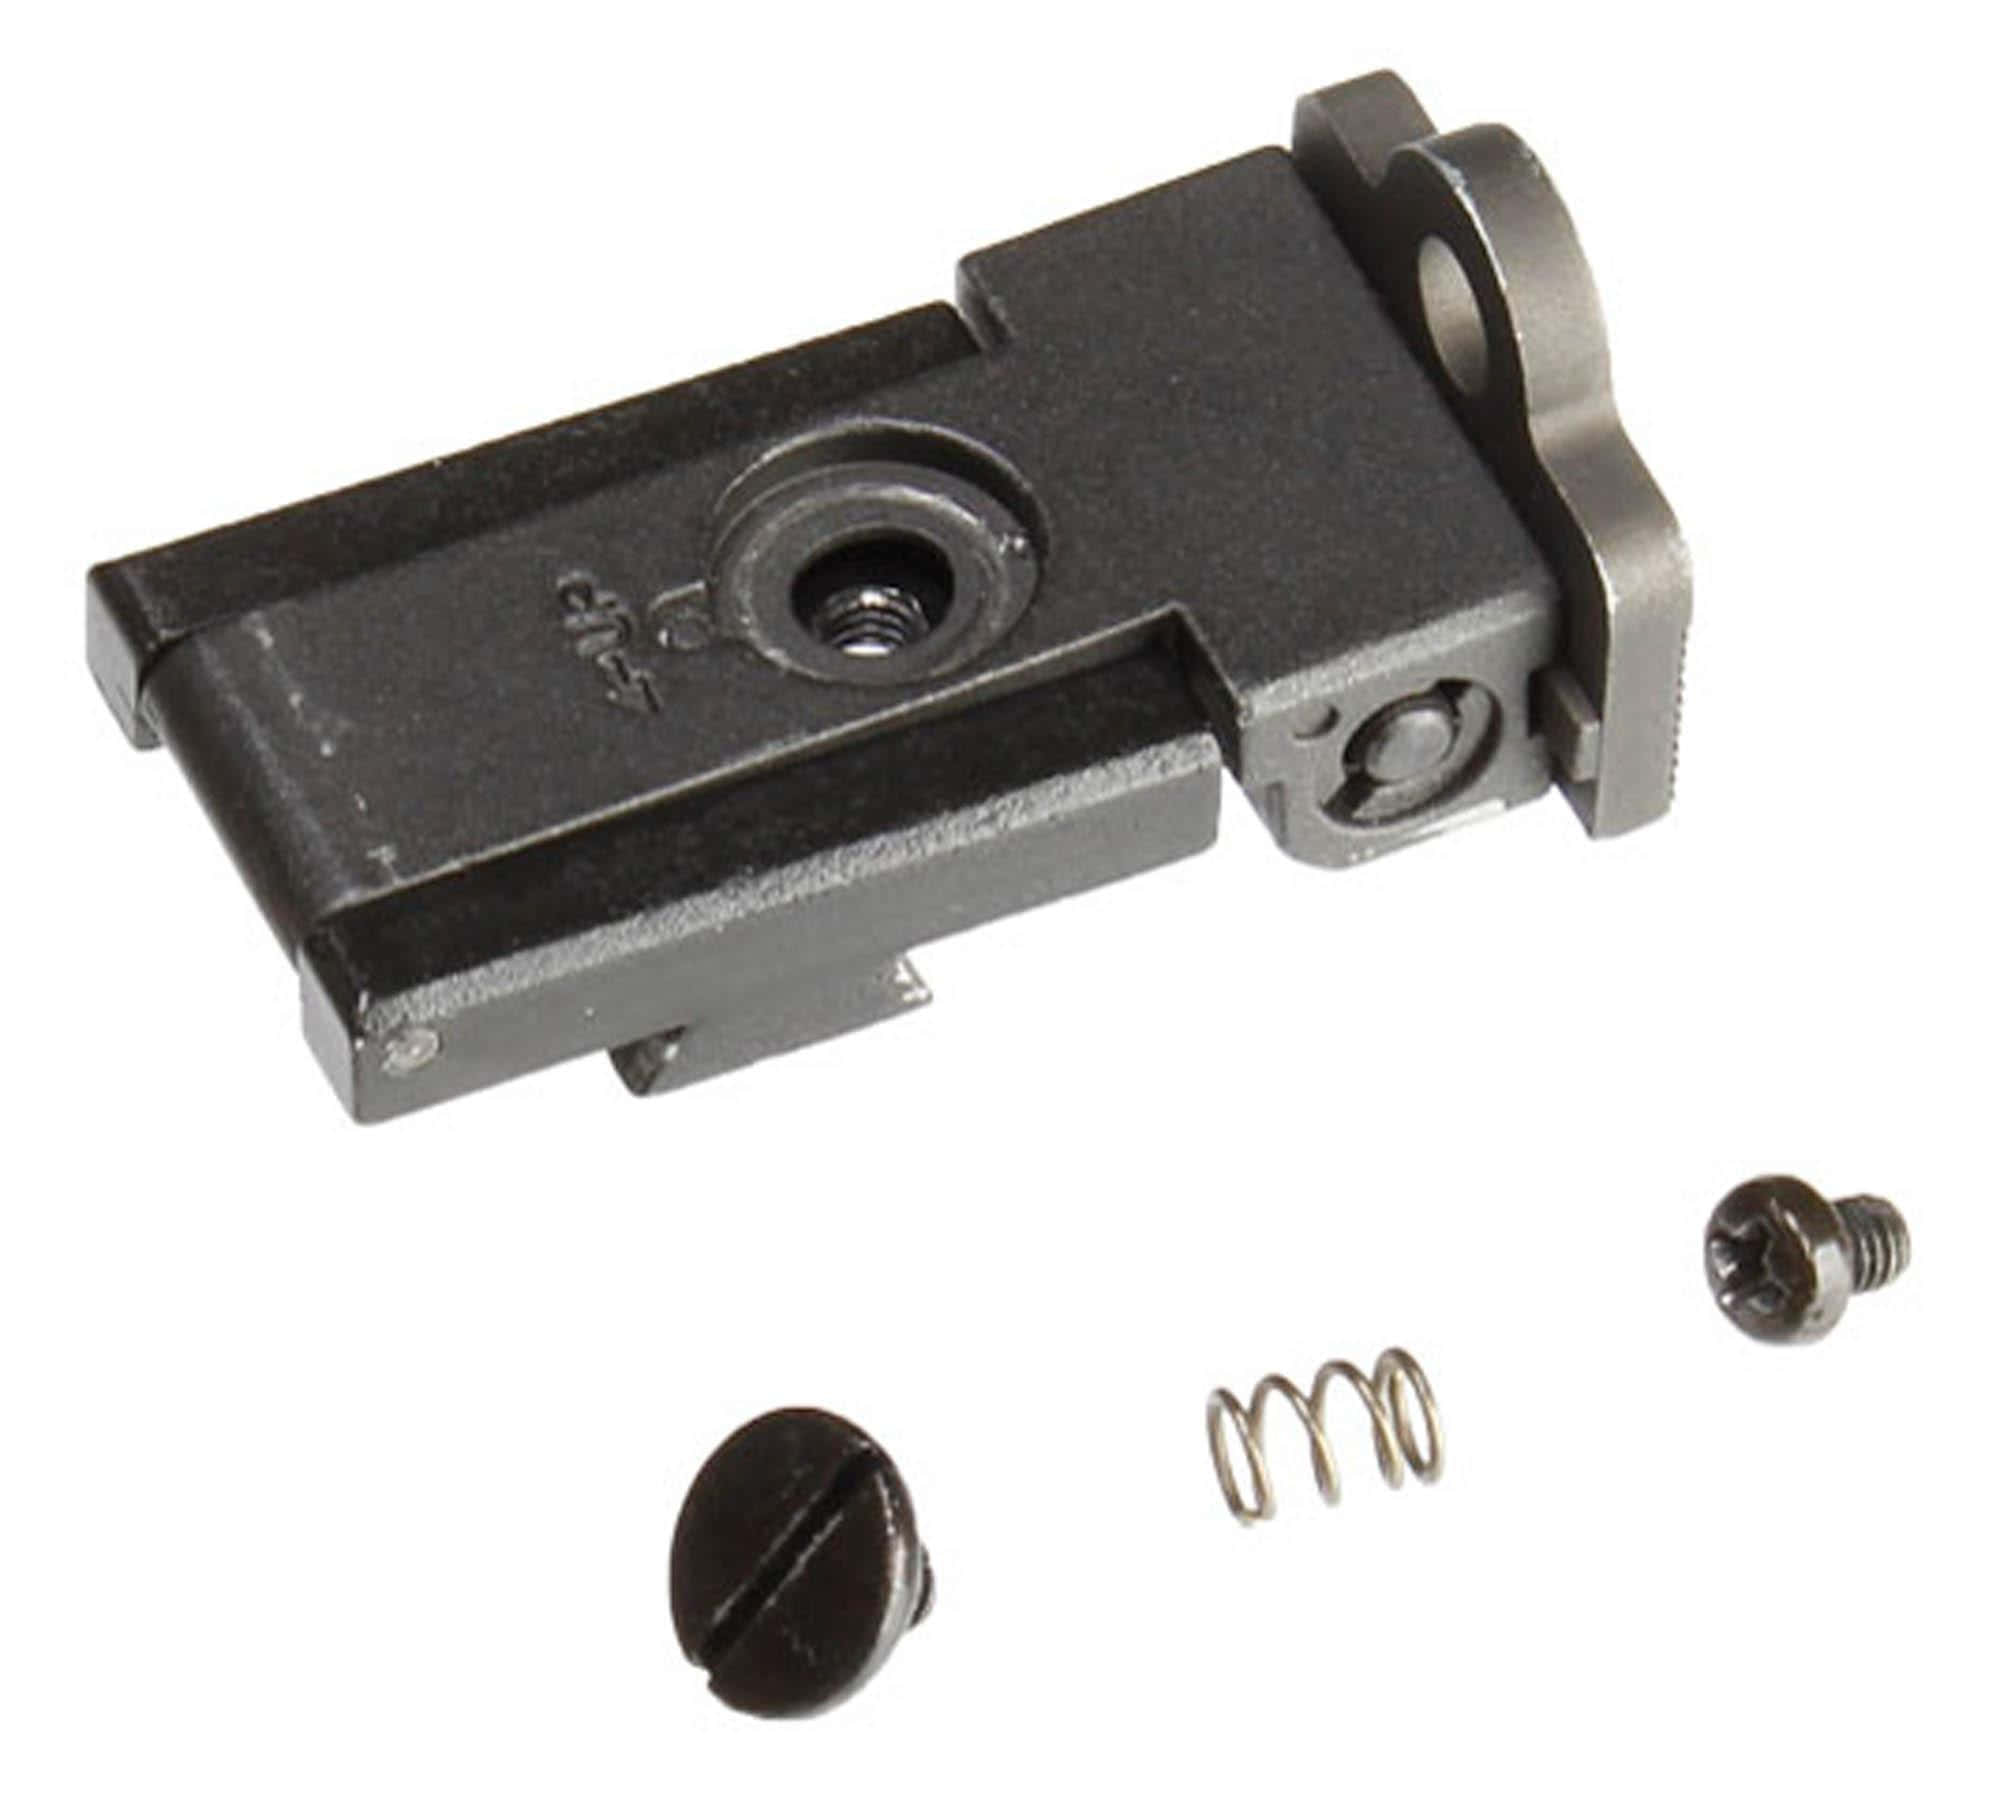 A64310-Rear sight type ghost pour Hi-Capa - AW CUSTOM - A64310